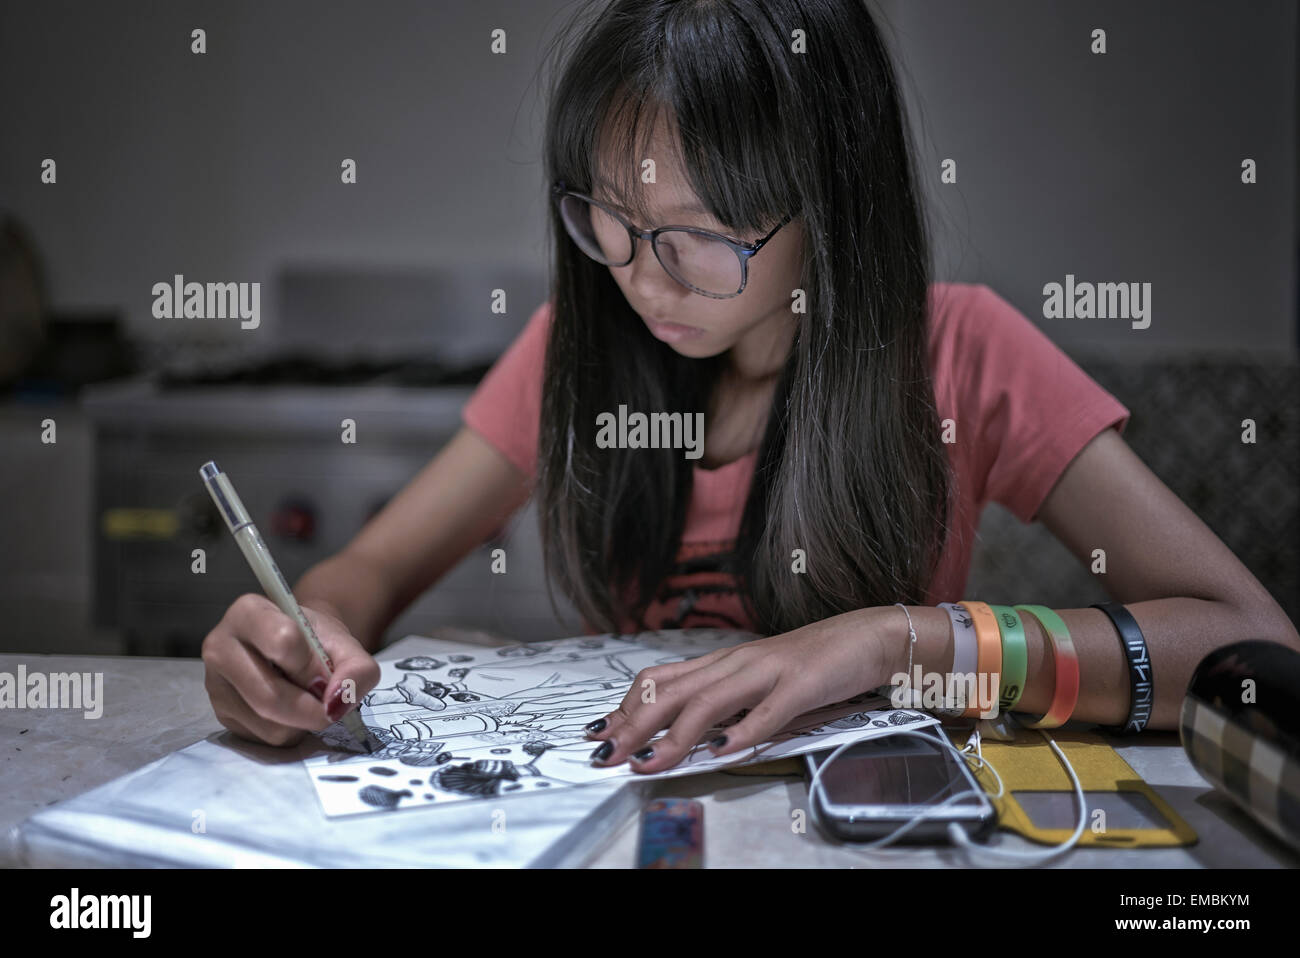 teenage-girl-drawing-at-home-EMBKYM.jpg